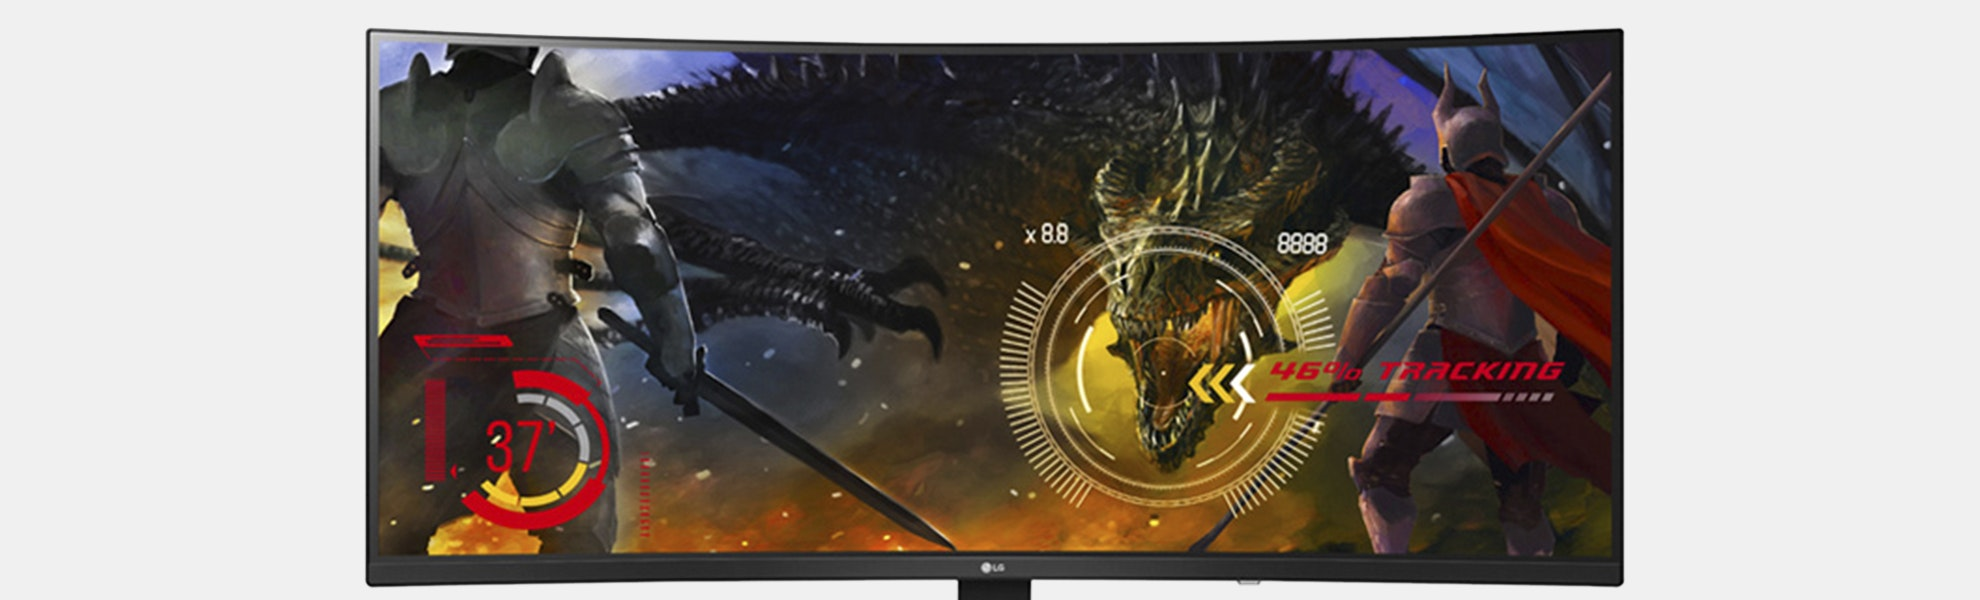 LG 34-Inch 144Hz GSync Curved Ultrawide IPS Monitor